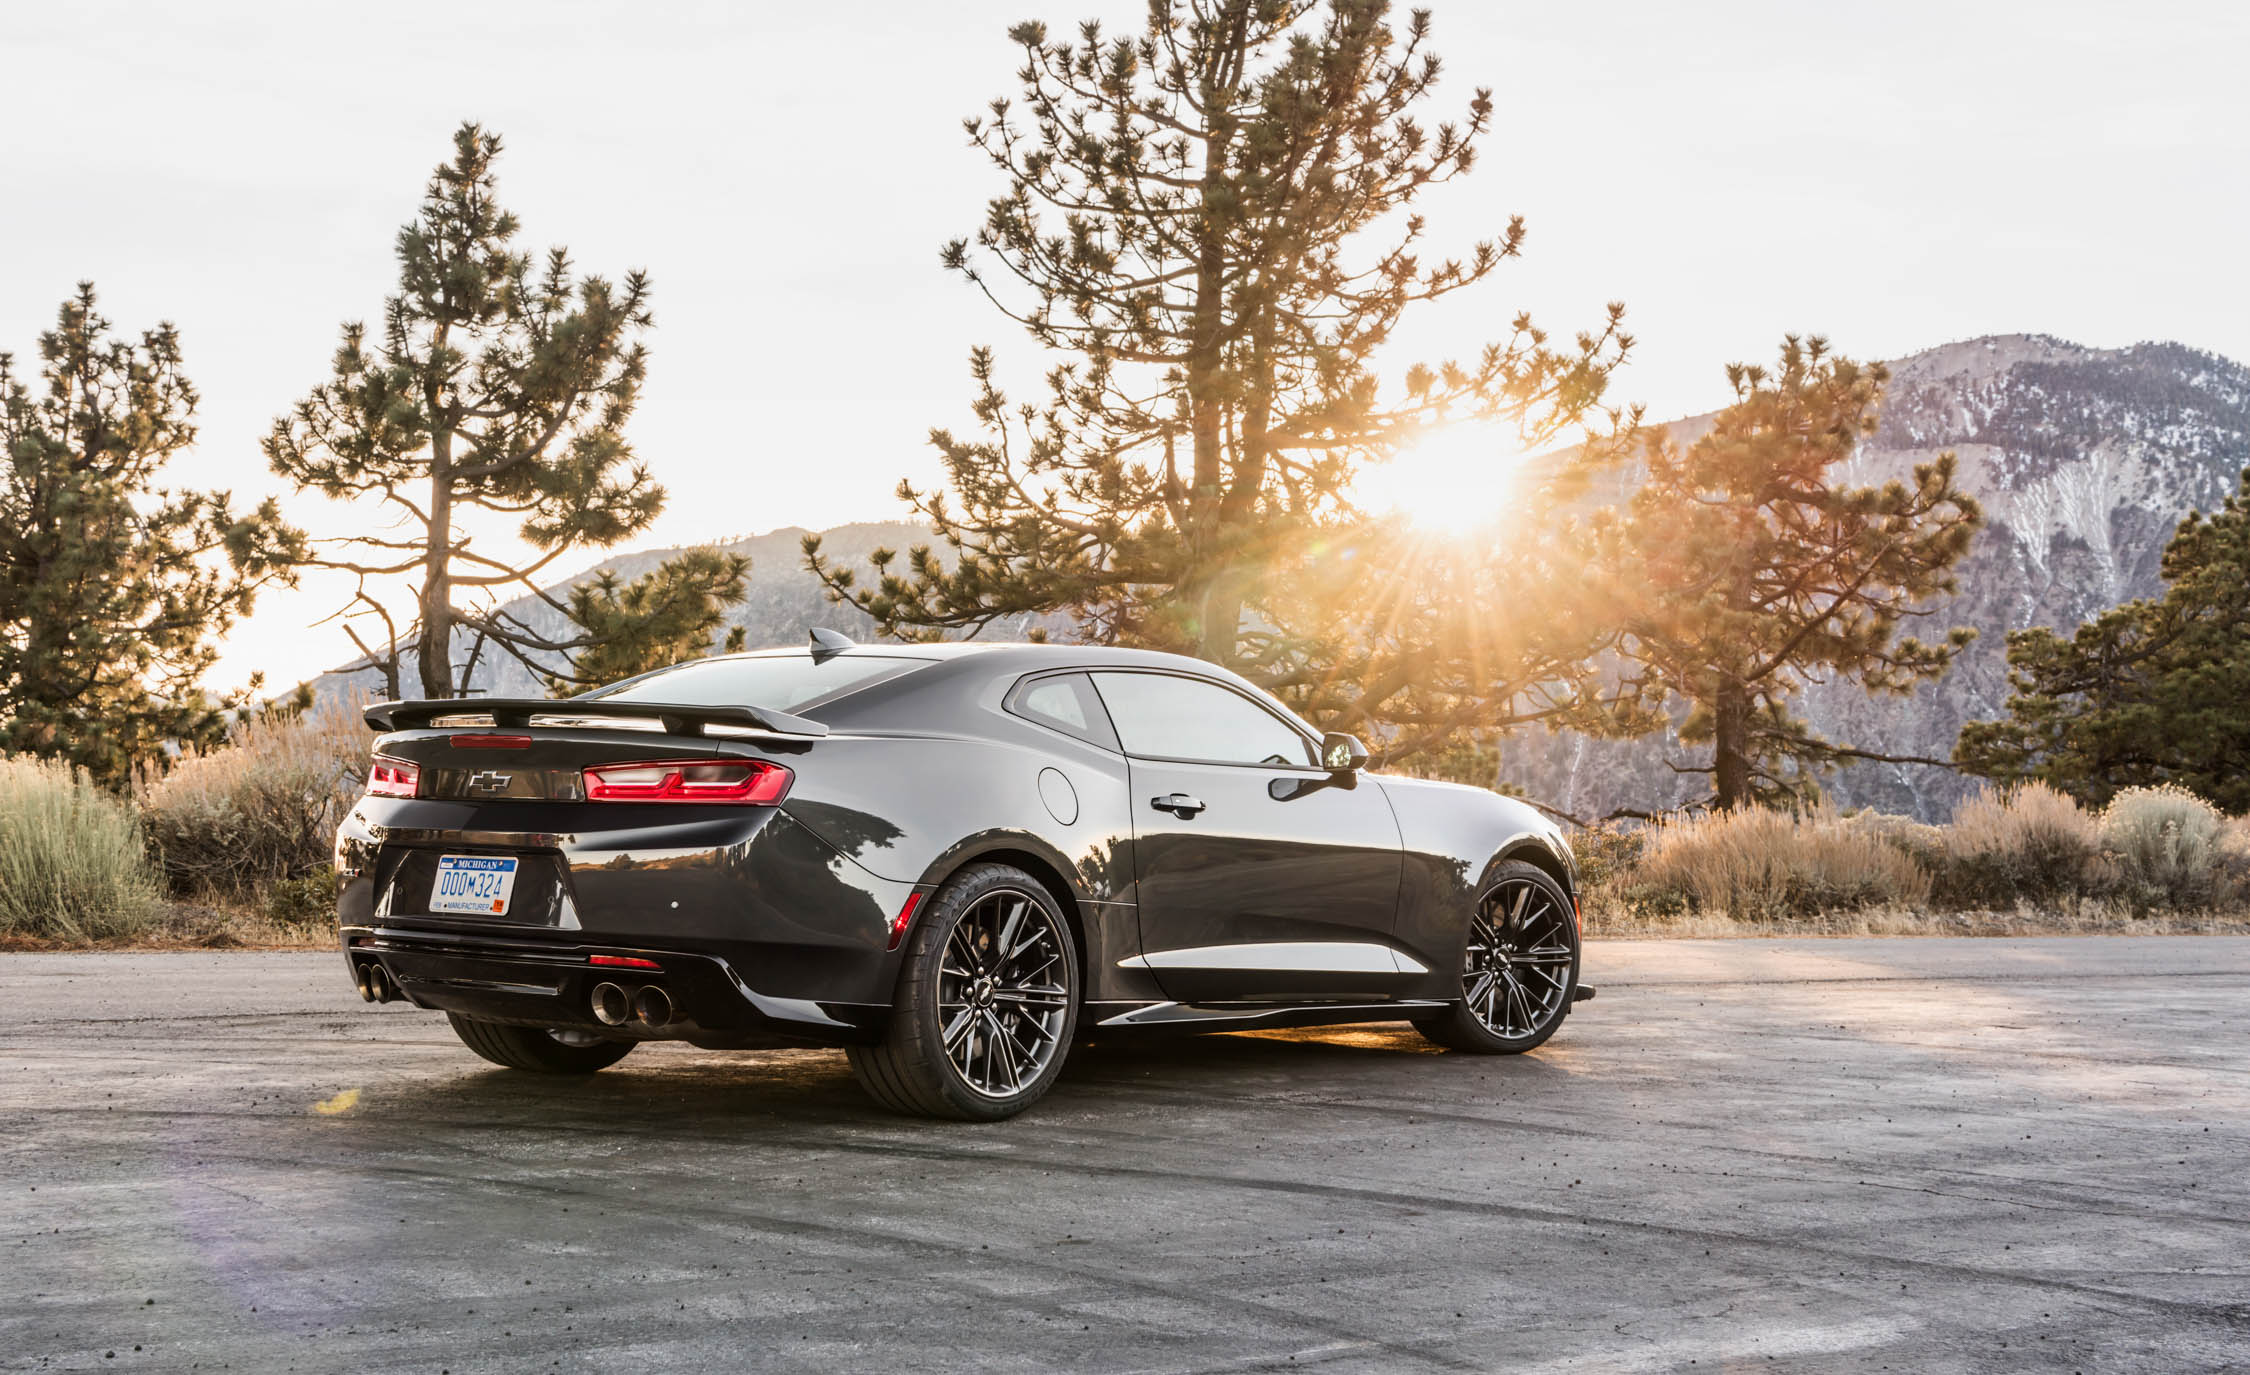 2017 Chevrolet Camaro Zl1 Grey Exterior Rear And Side